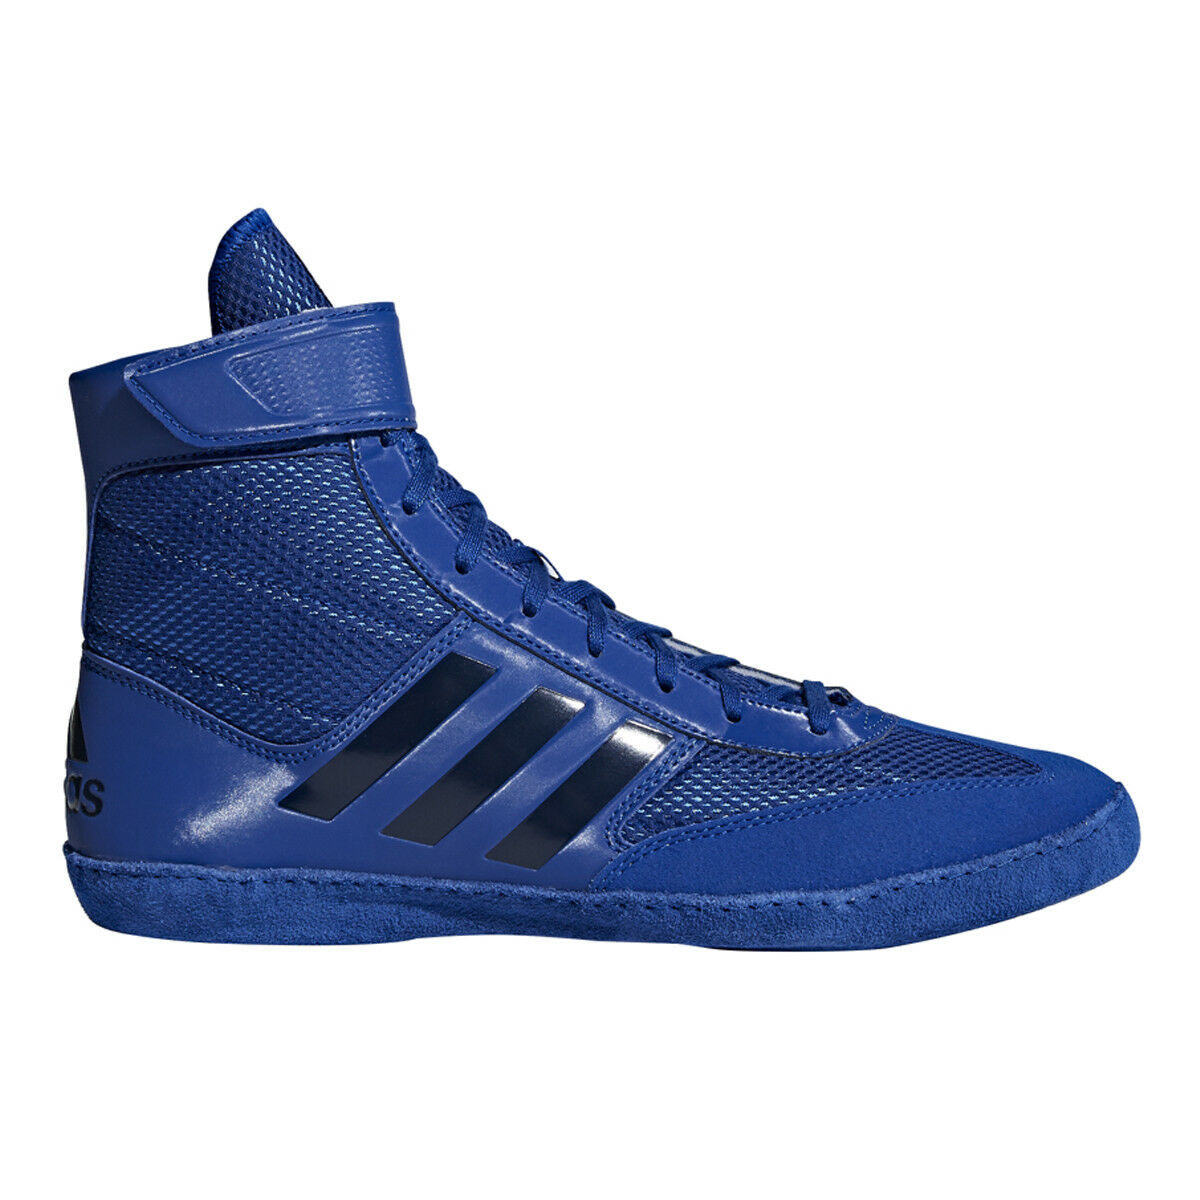 Adidas Combat Speed 5 Uomo Wrestling Shoes AC7500 - Royal (NEW) Lists @  100